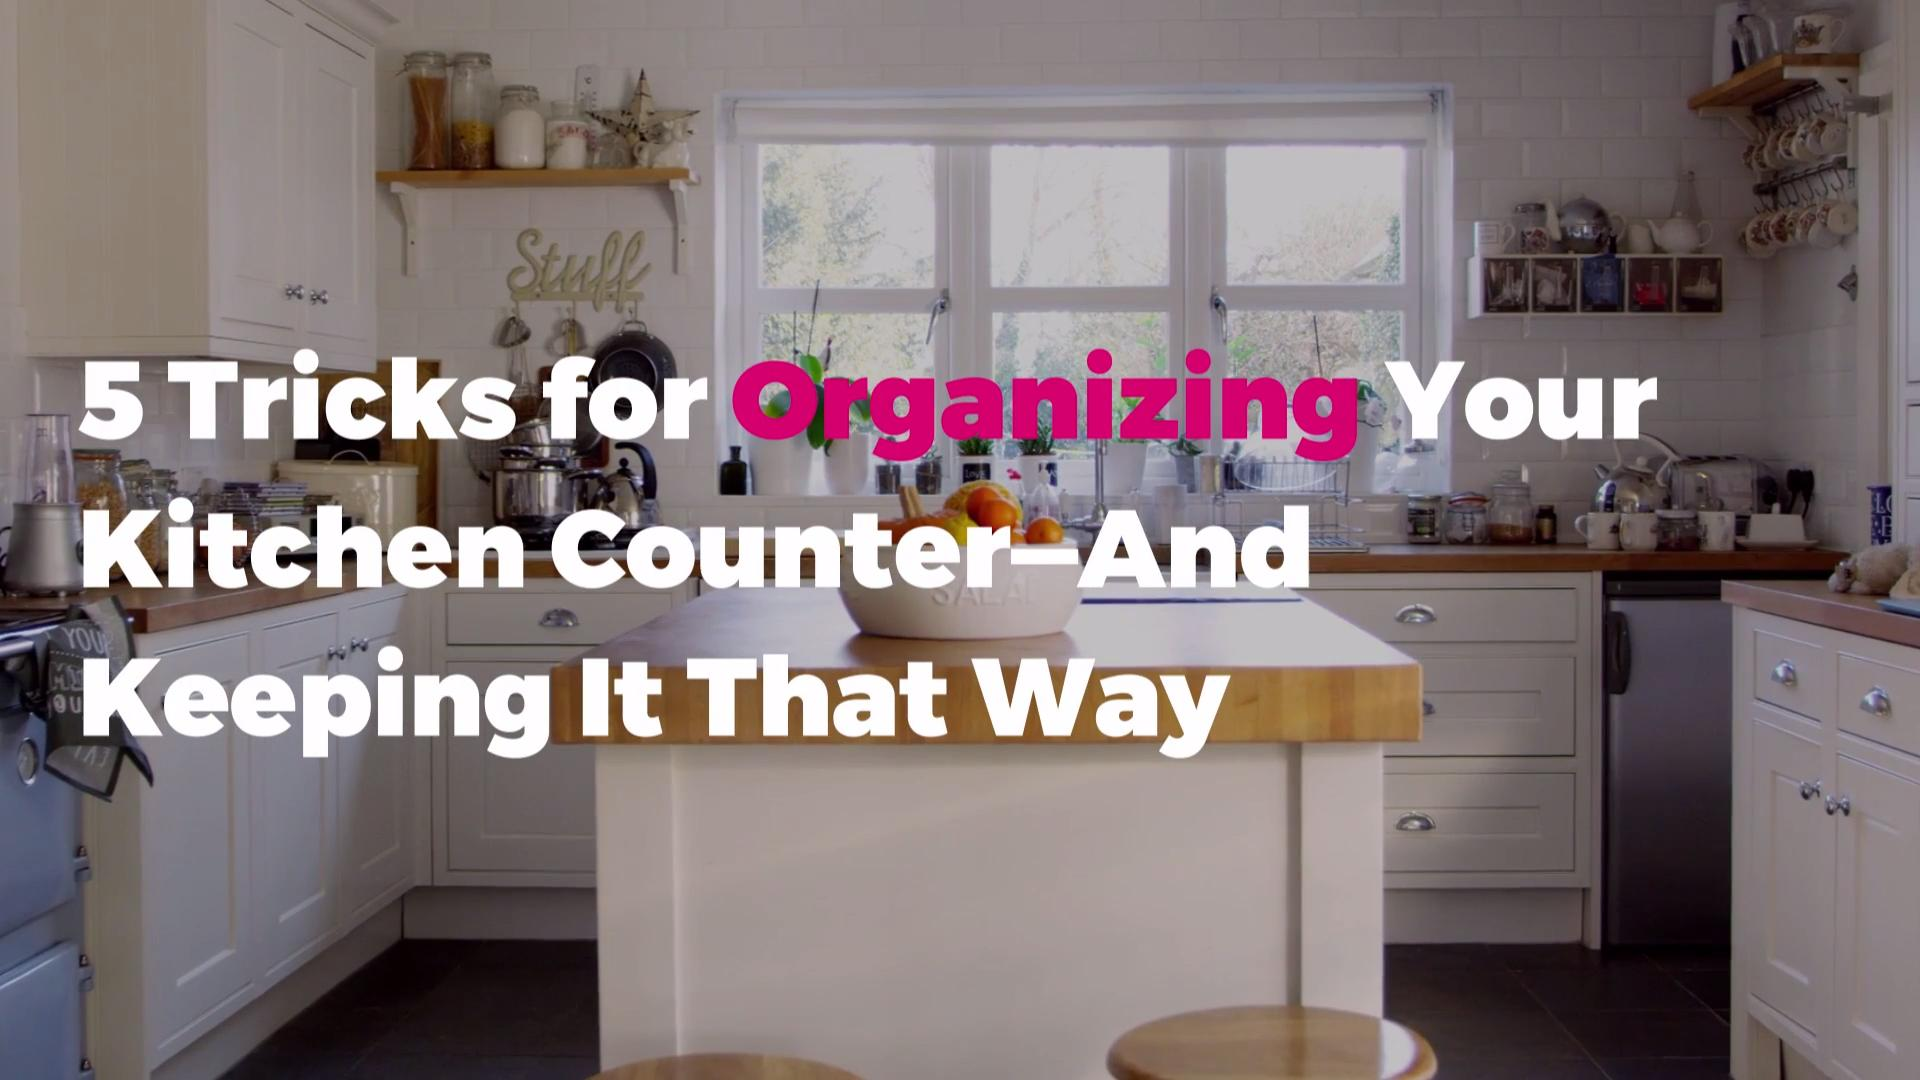 Tips For Organizing Your Kitchen Counter And Keeping It That Way